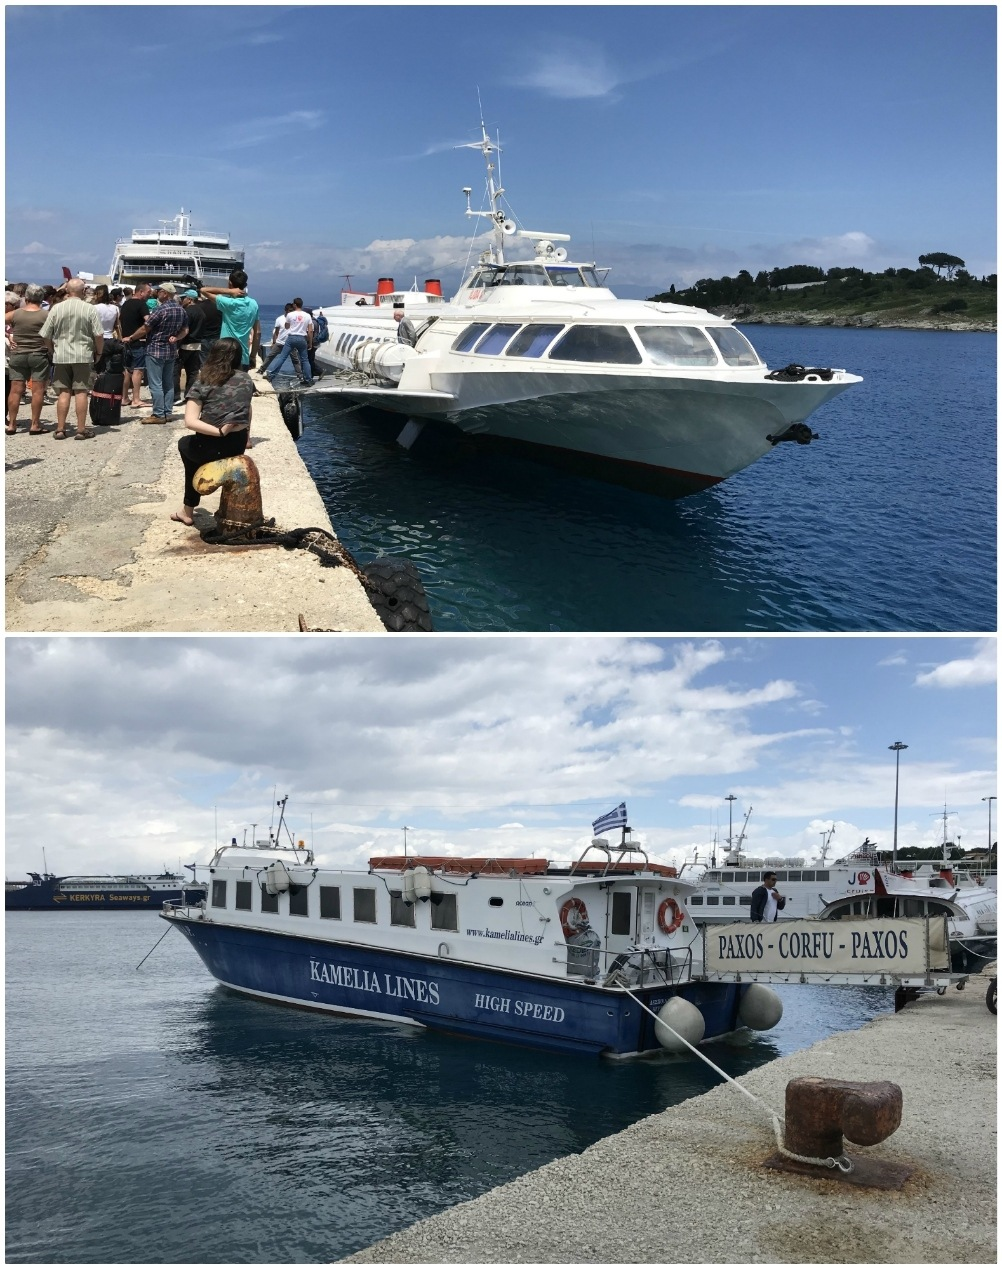 Ferries from Corfu to Paxos Photo Heatheronhertravels